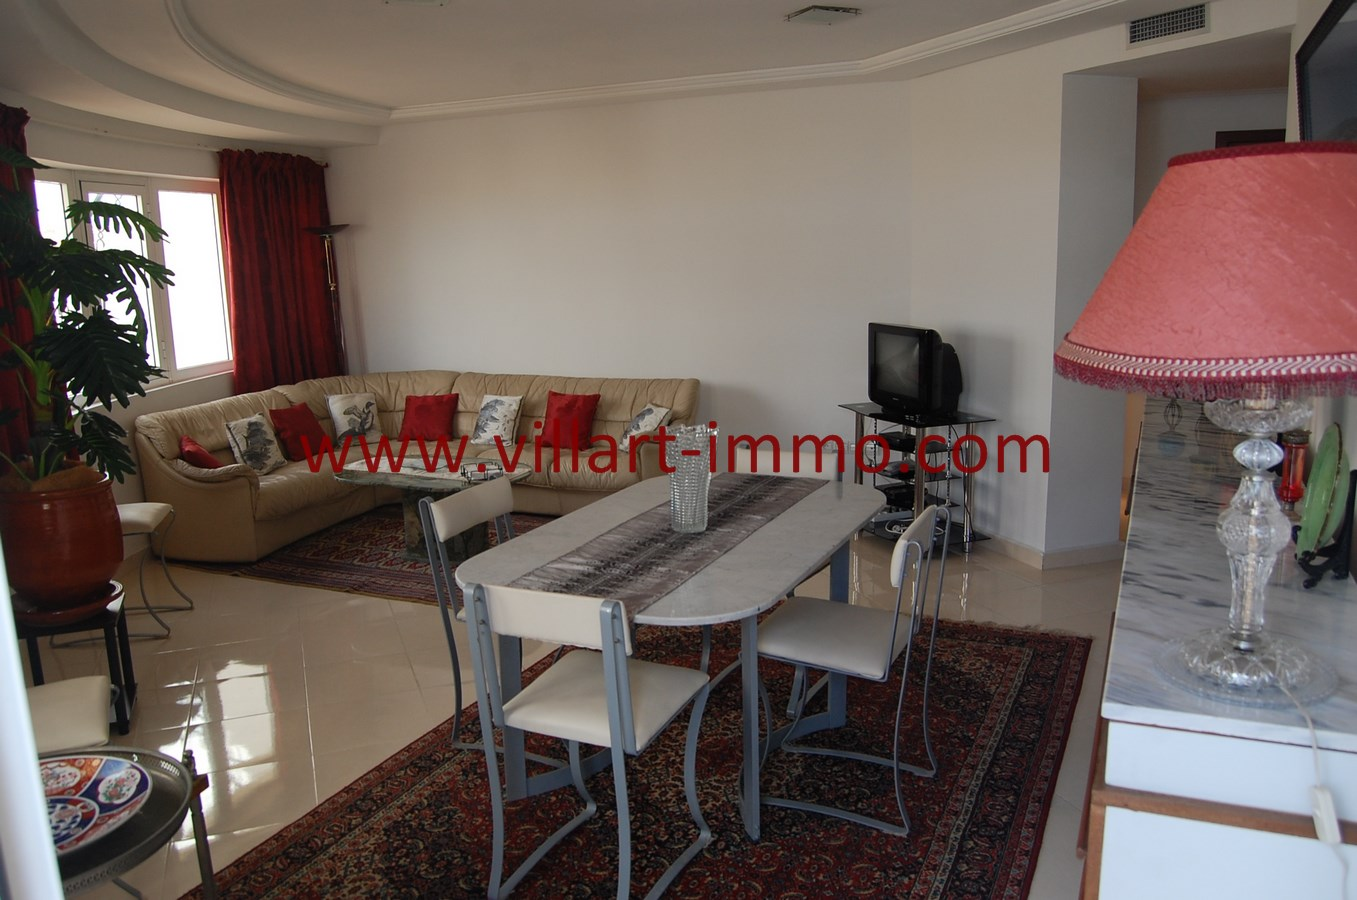 3-Location-Appartement-Tanger-Route de Rabat-Salon 2-L1042-Villart Immo